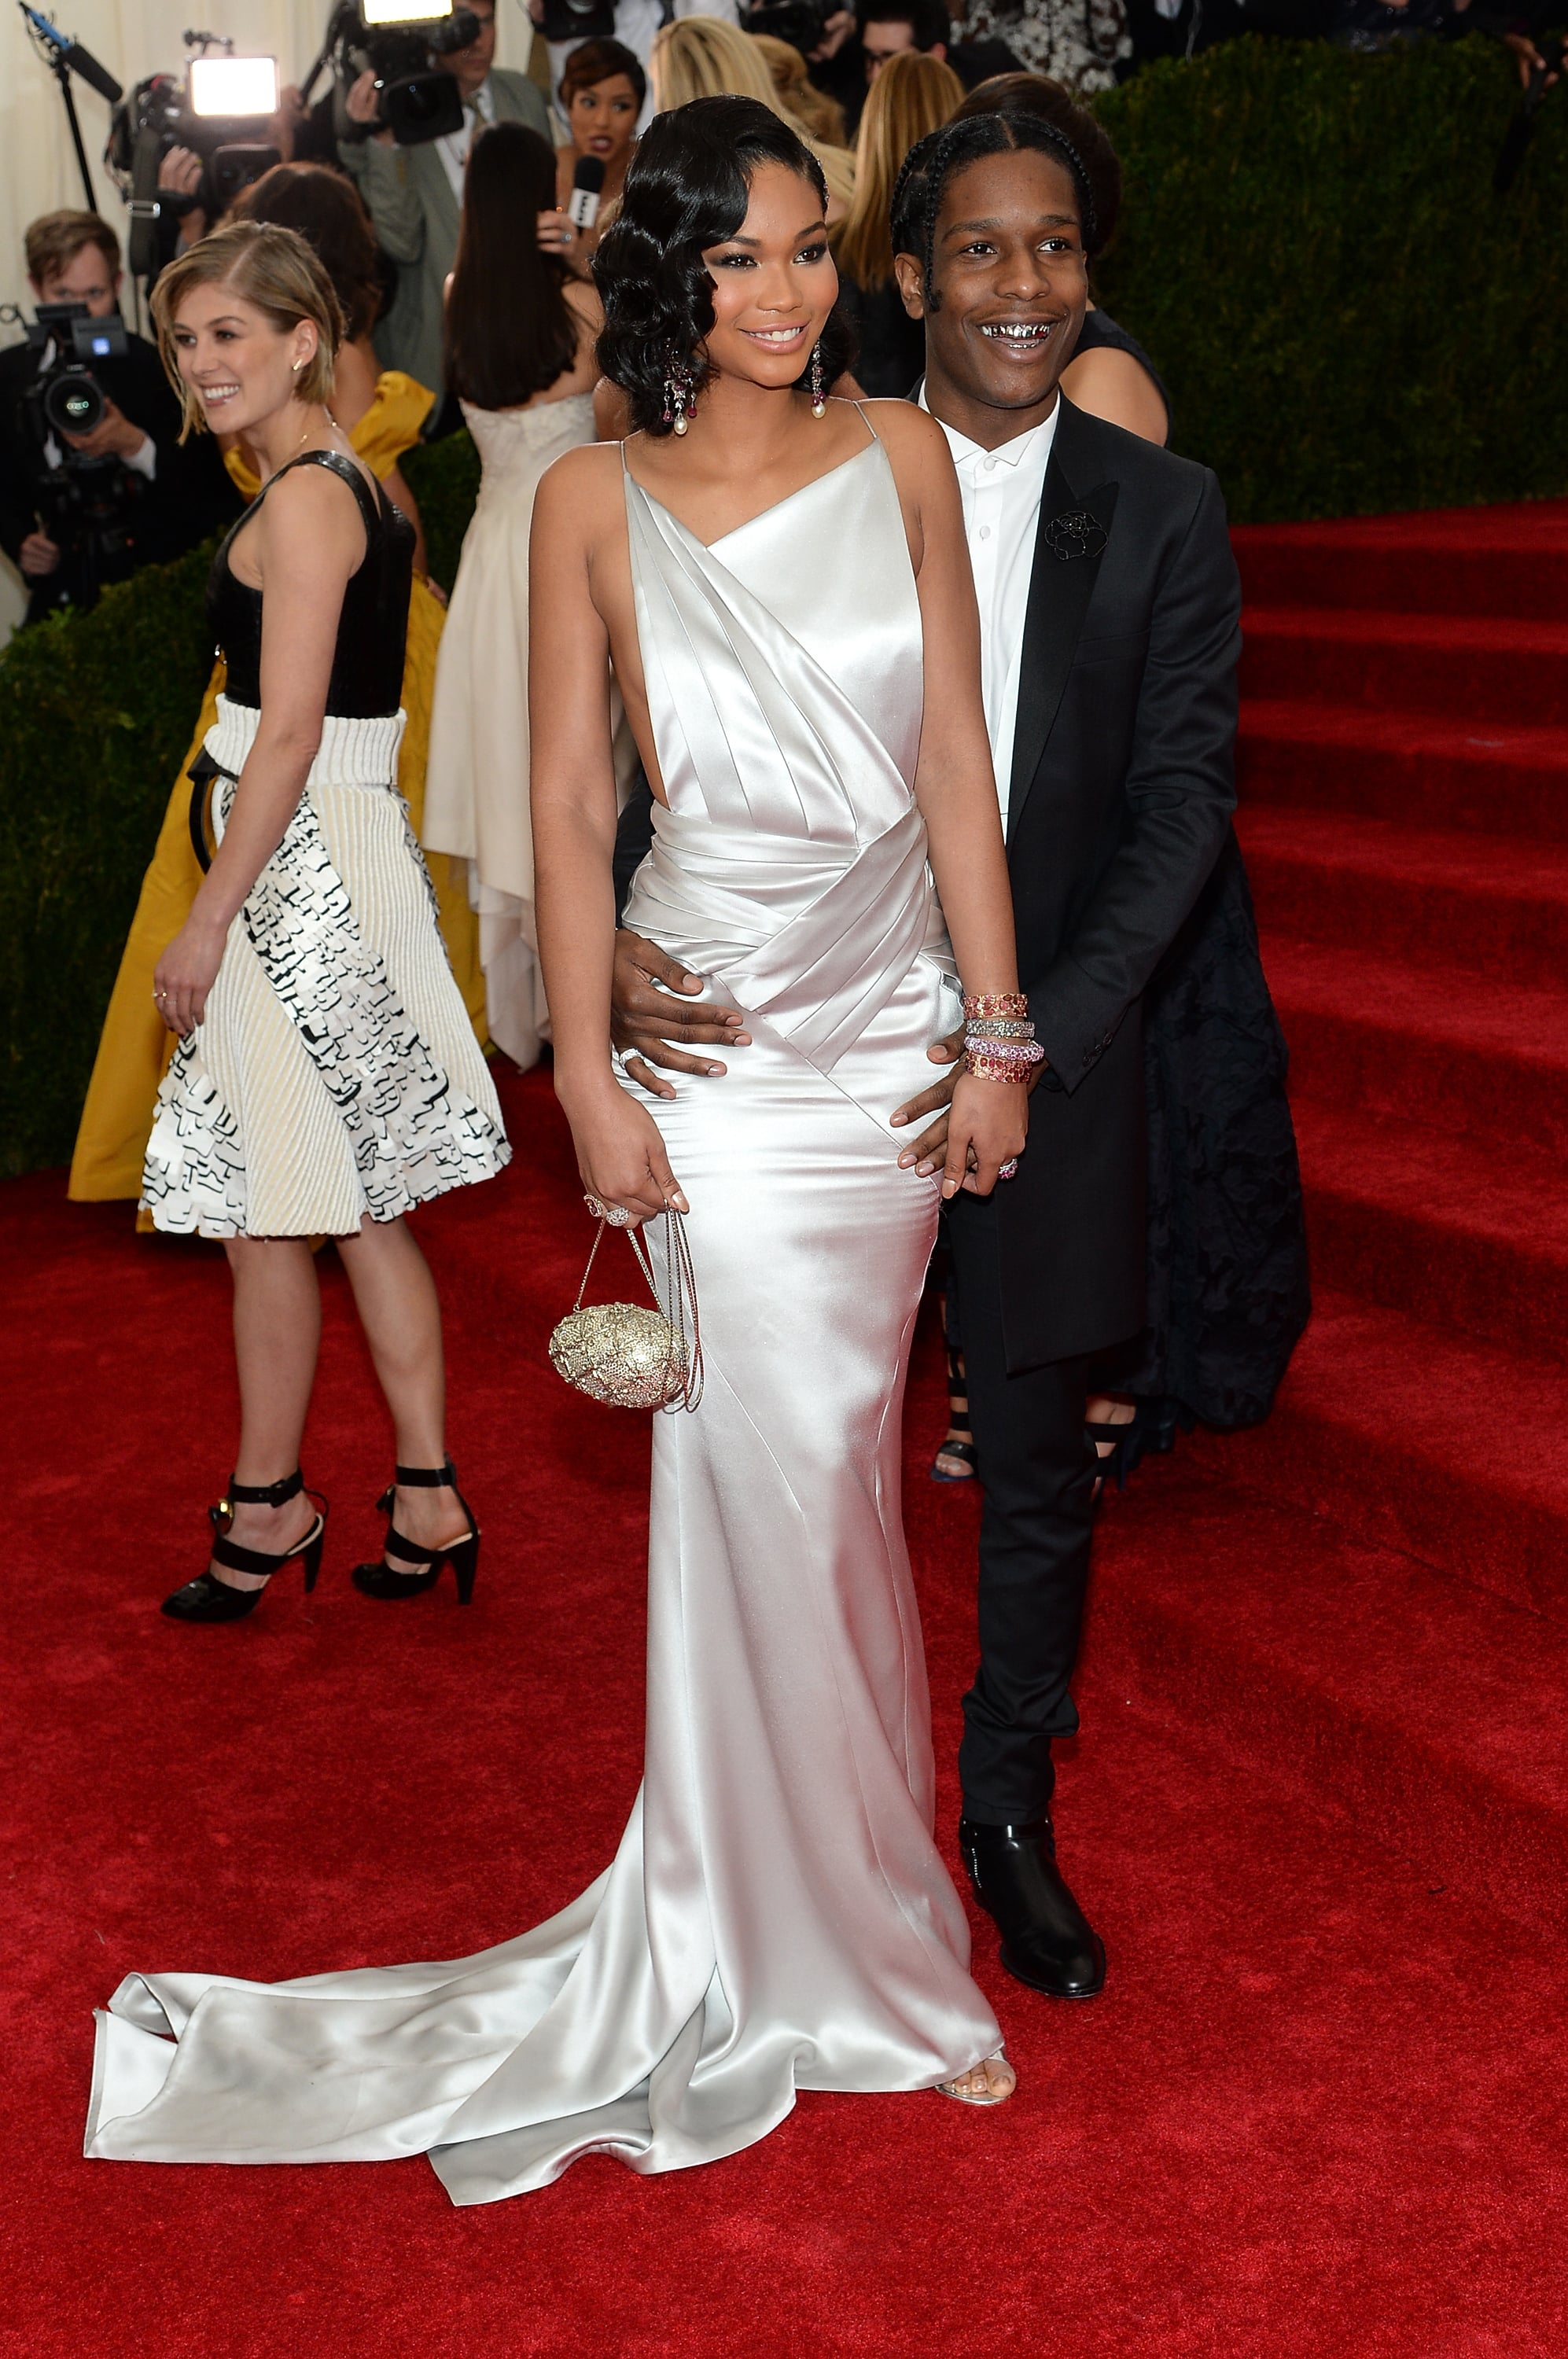 A$AP Rocky kept his hands on his girlfriend, Chanel Iman.